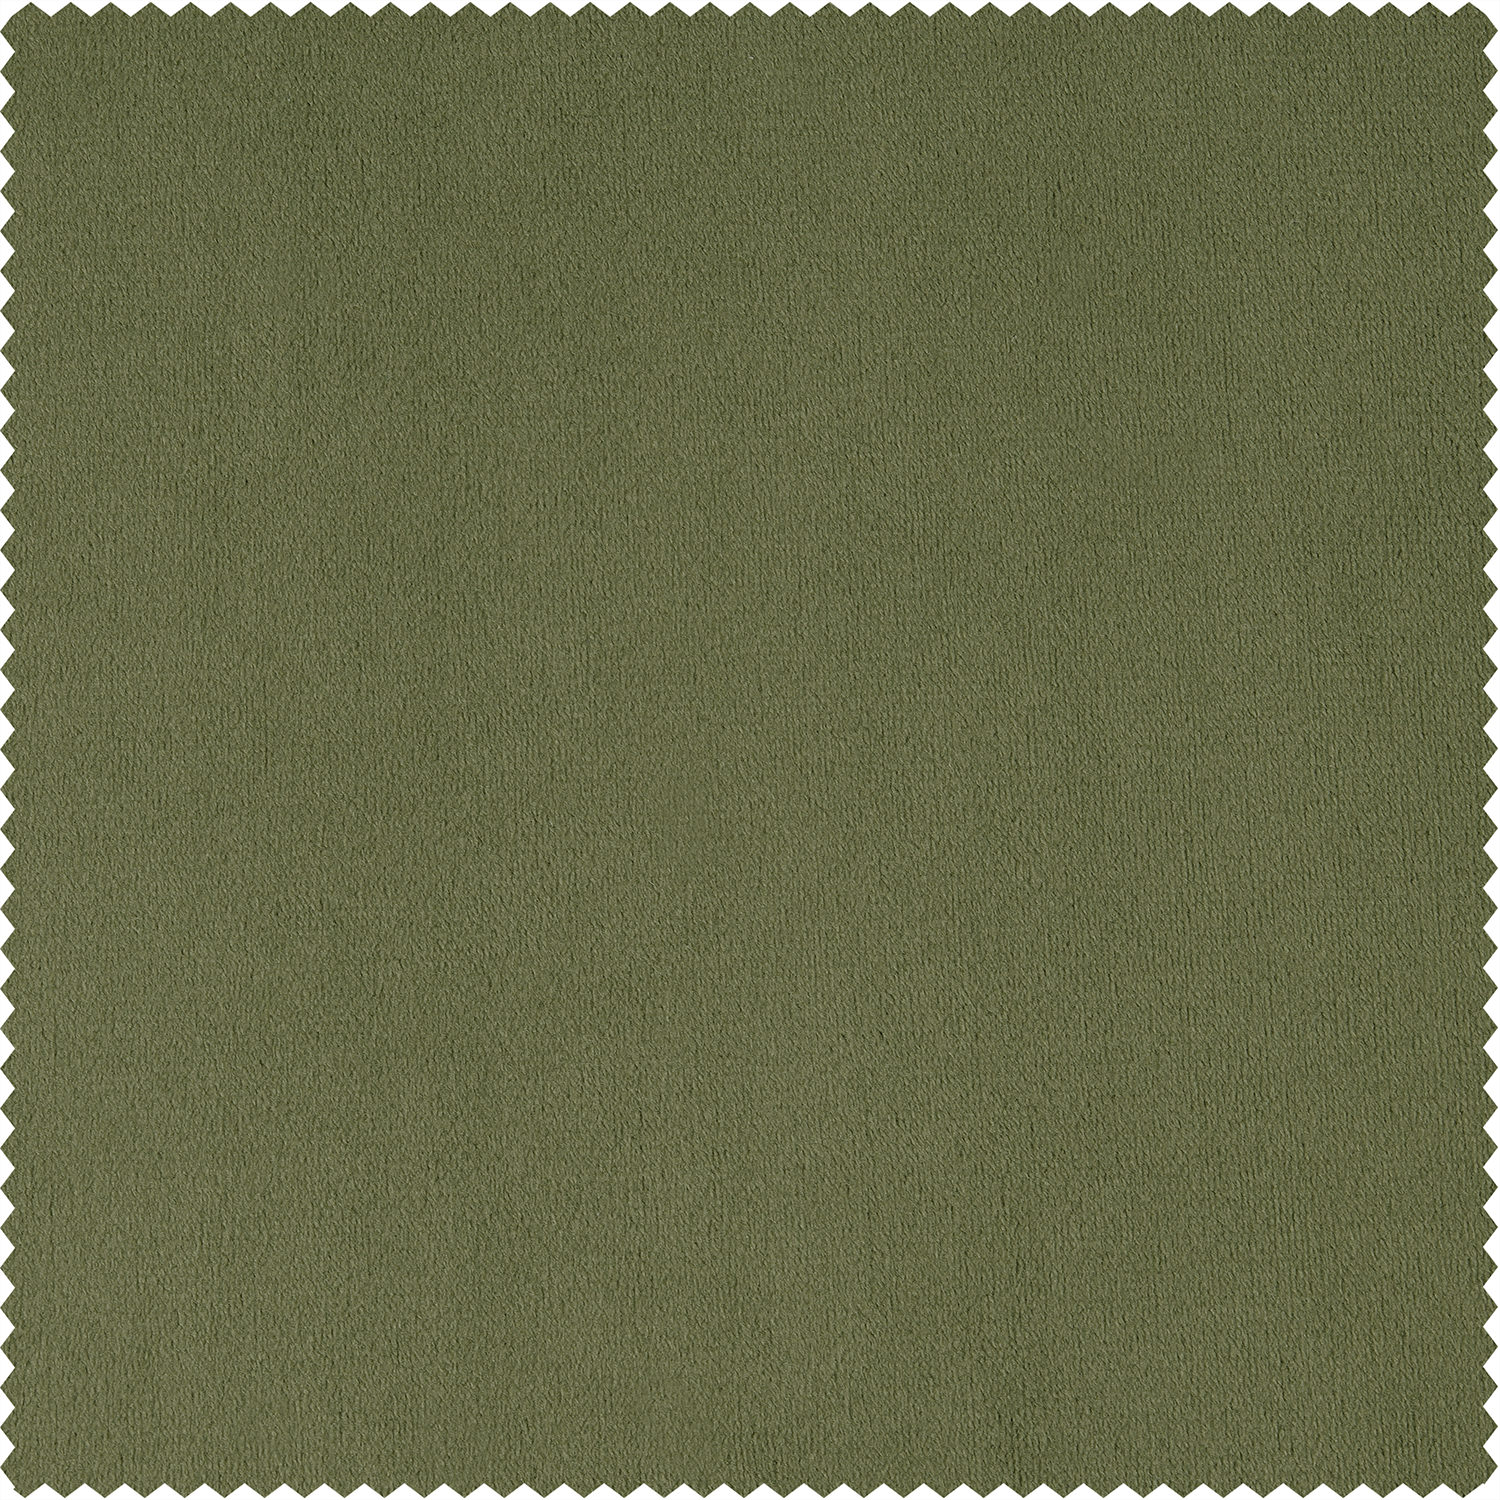 Signature Basque Green Blackout Velvet Swatch